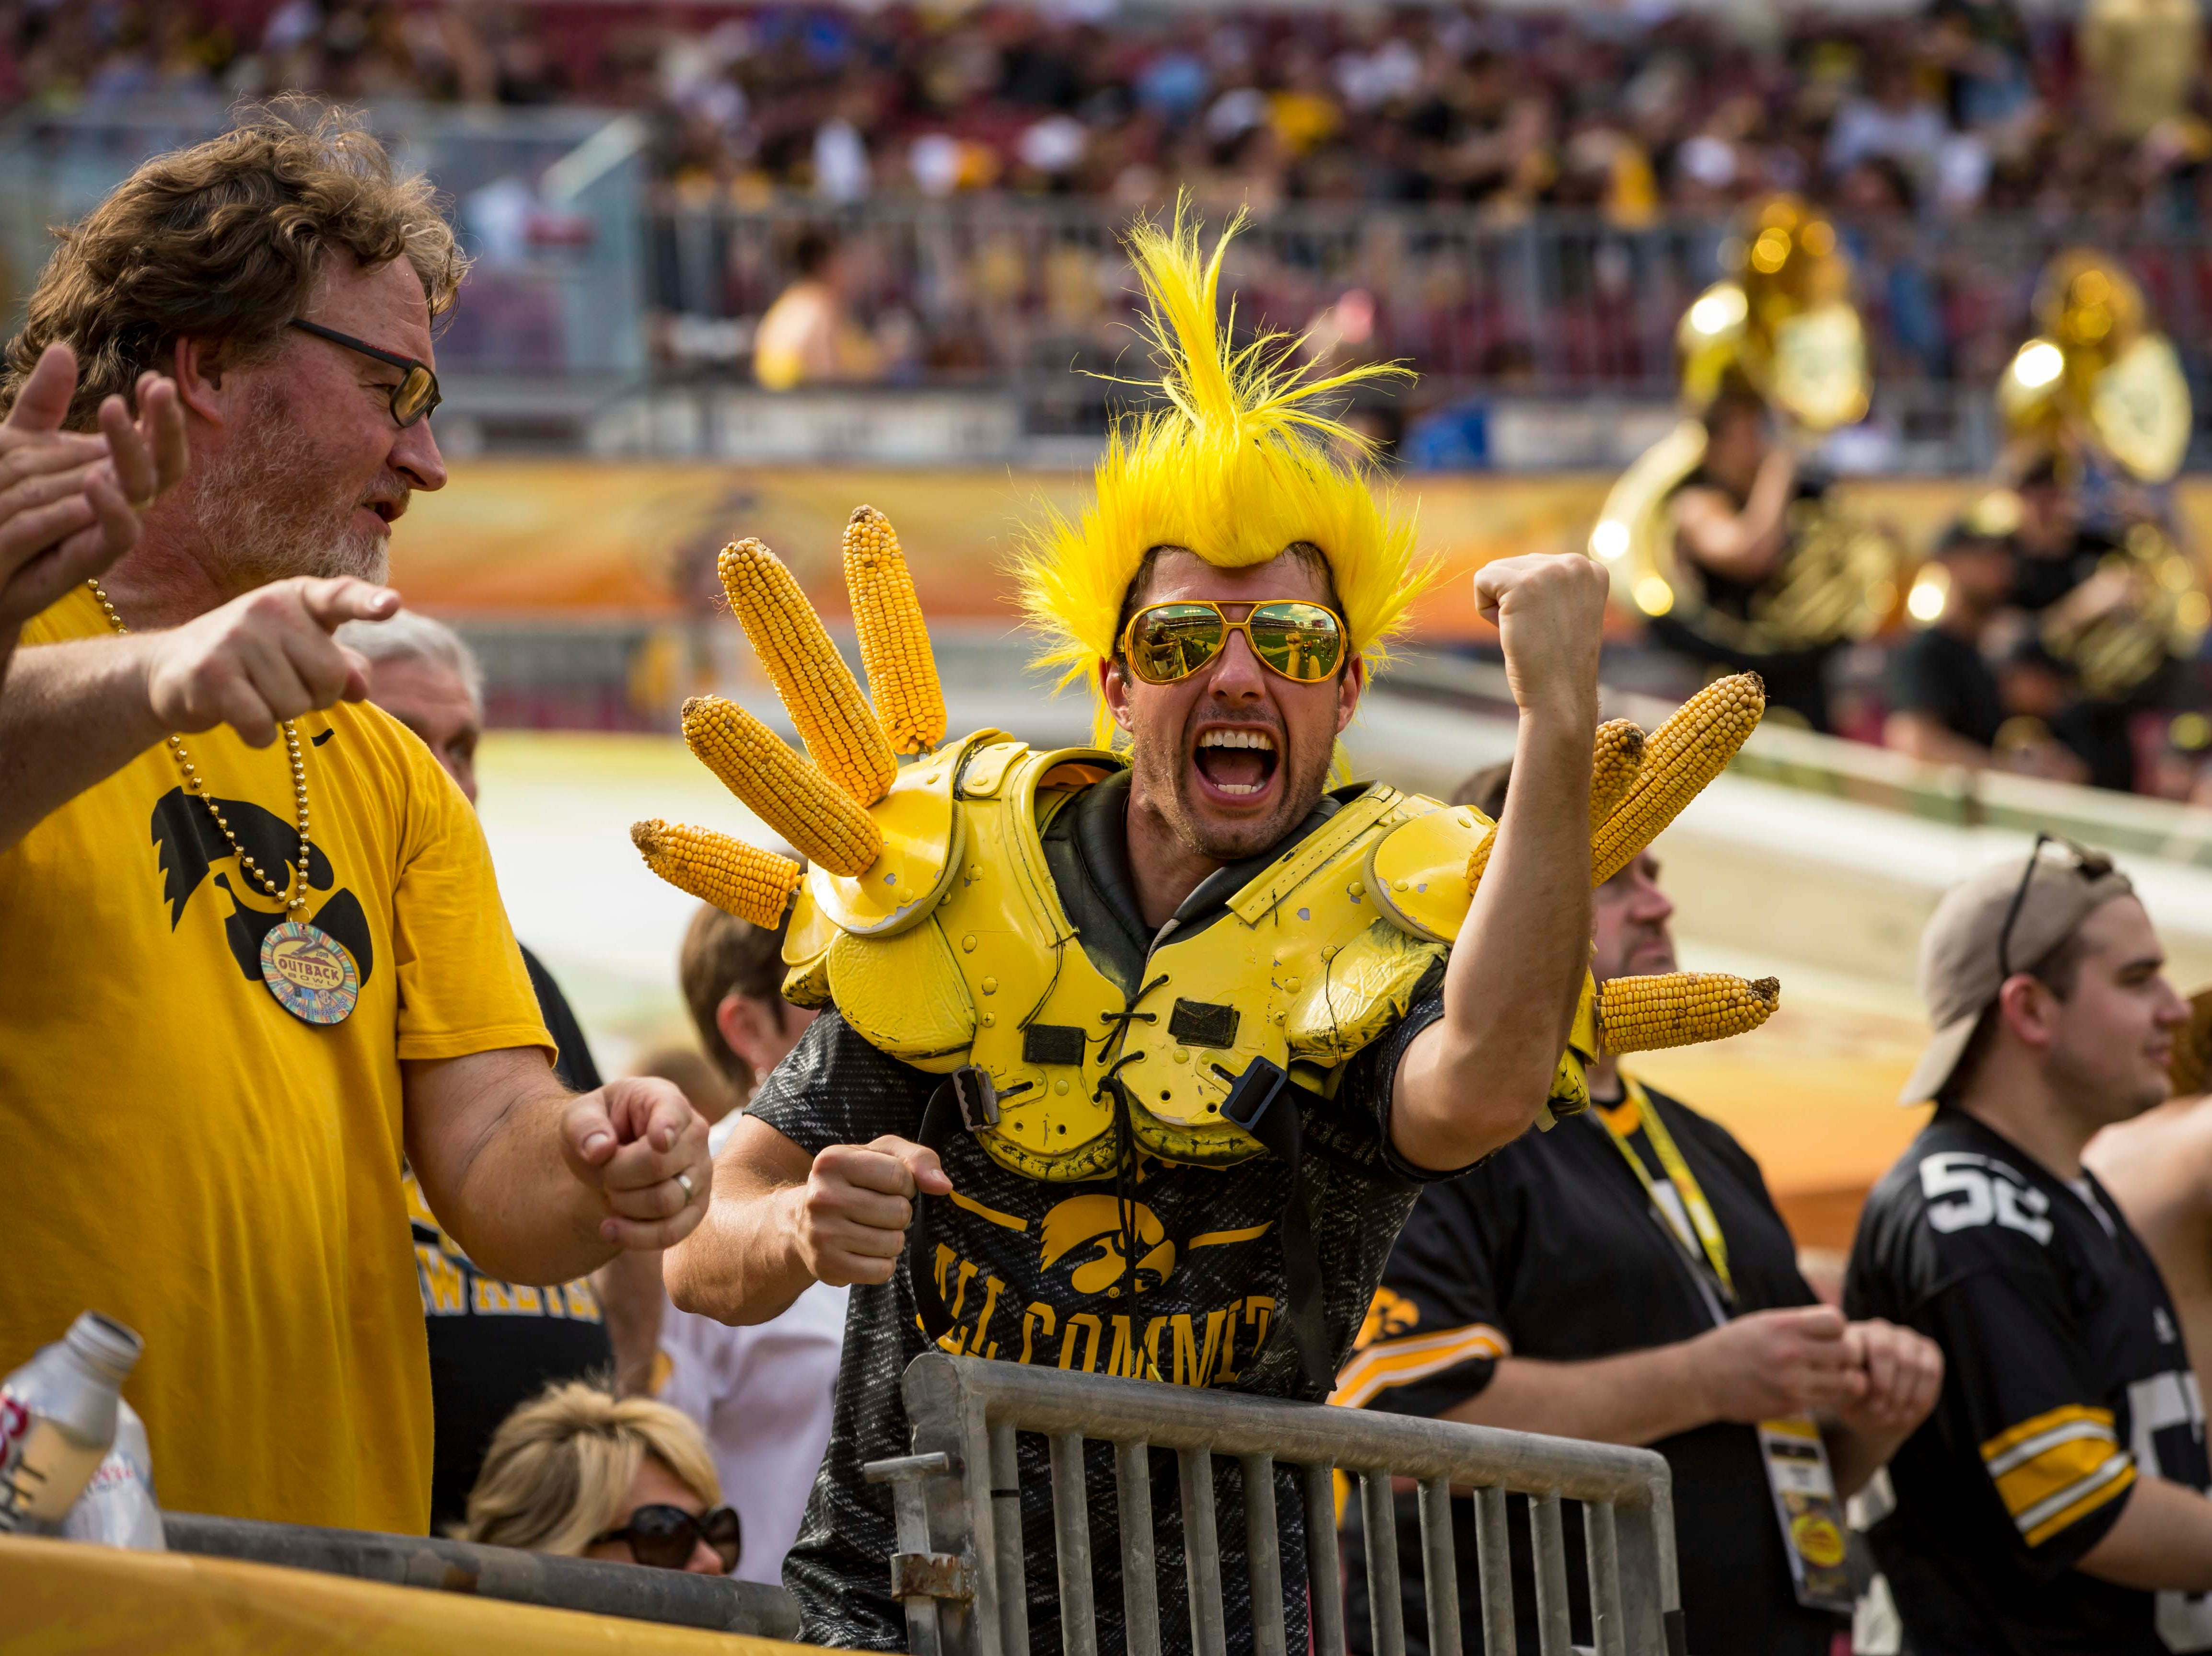 Colton Cason of Albia cheers in the first half at the  Outback Bowl Tues., Jan. 1, 2019, at Raymond James Stadium in Tampa, Florida. Iowa takes a 17-6 lead over Miss. St. into halftime.